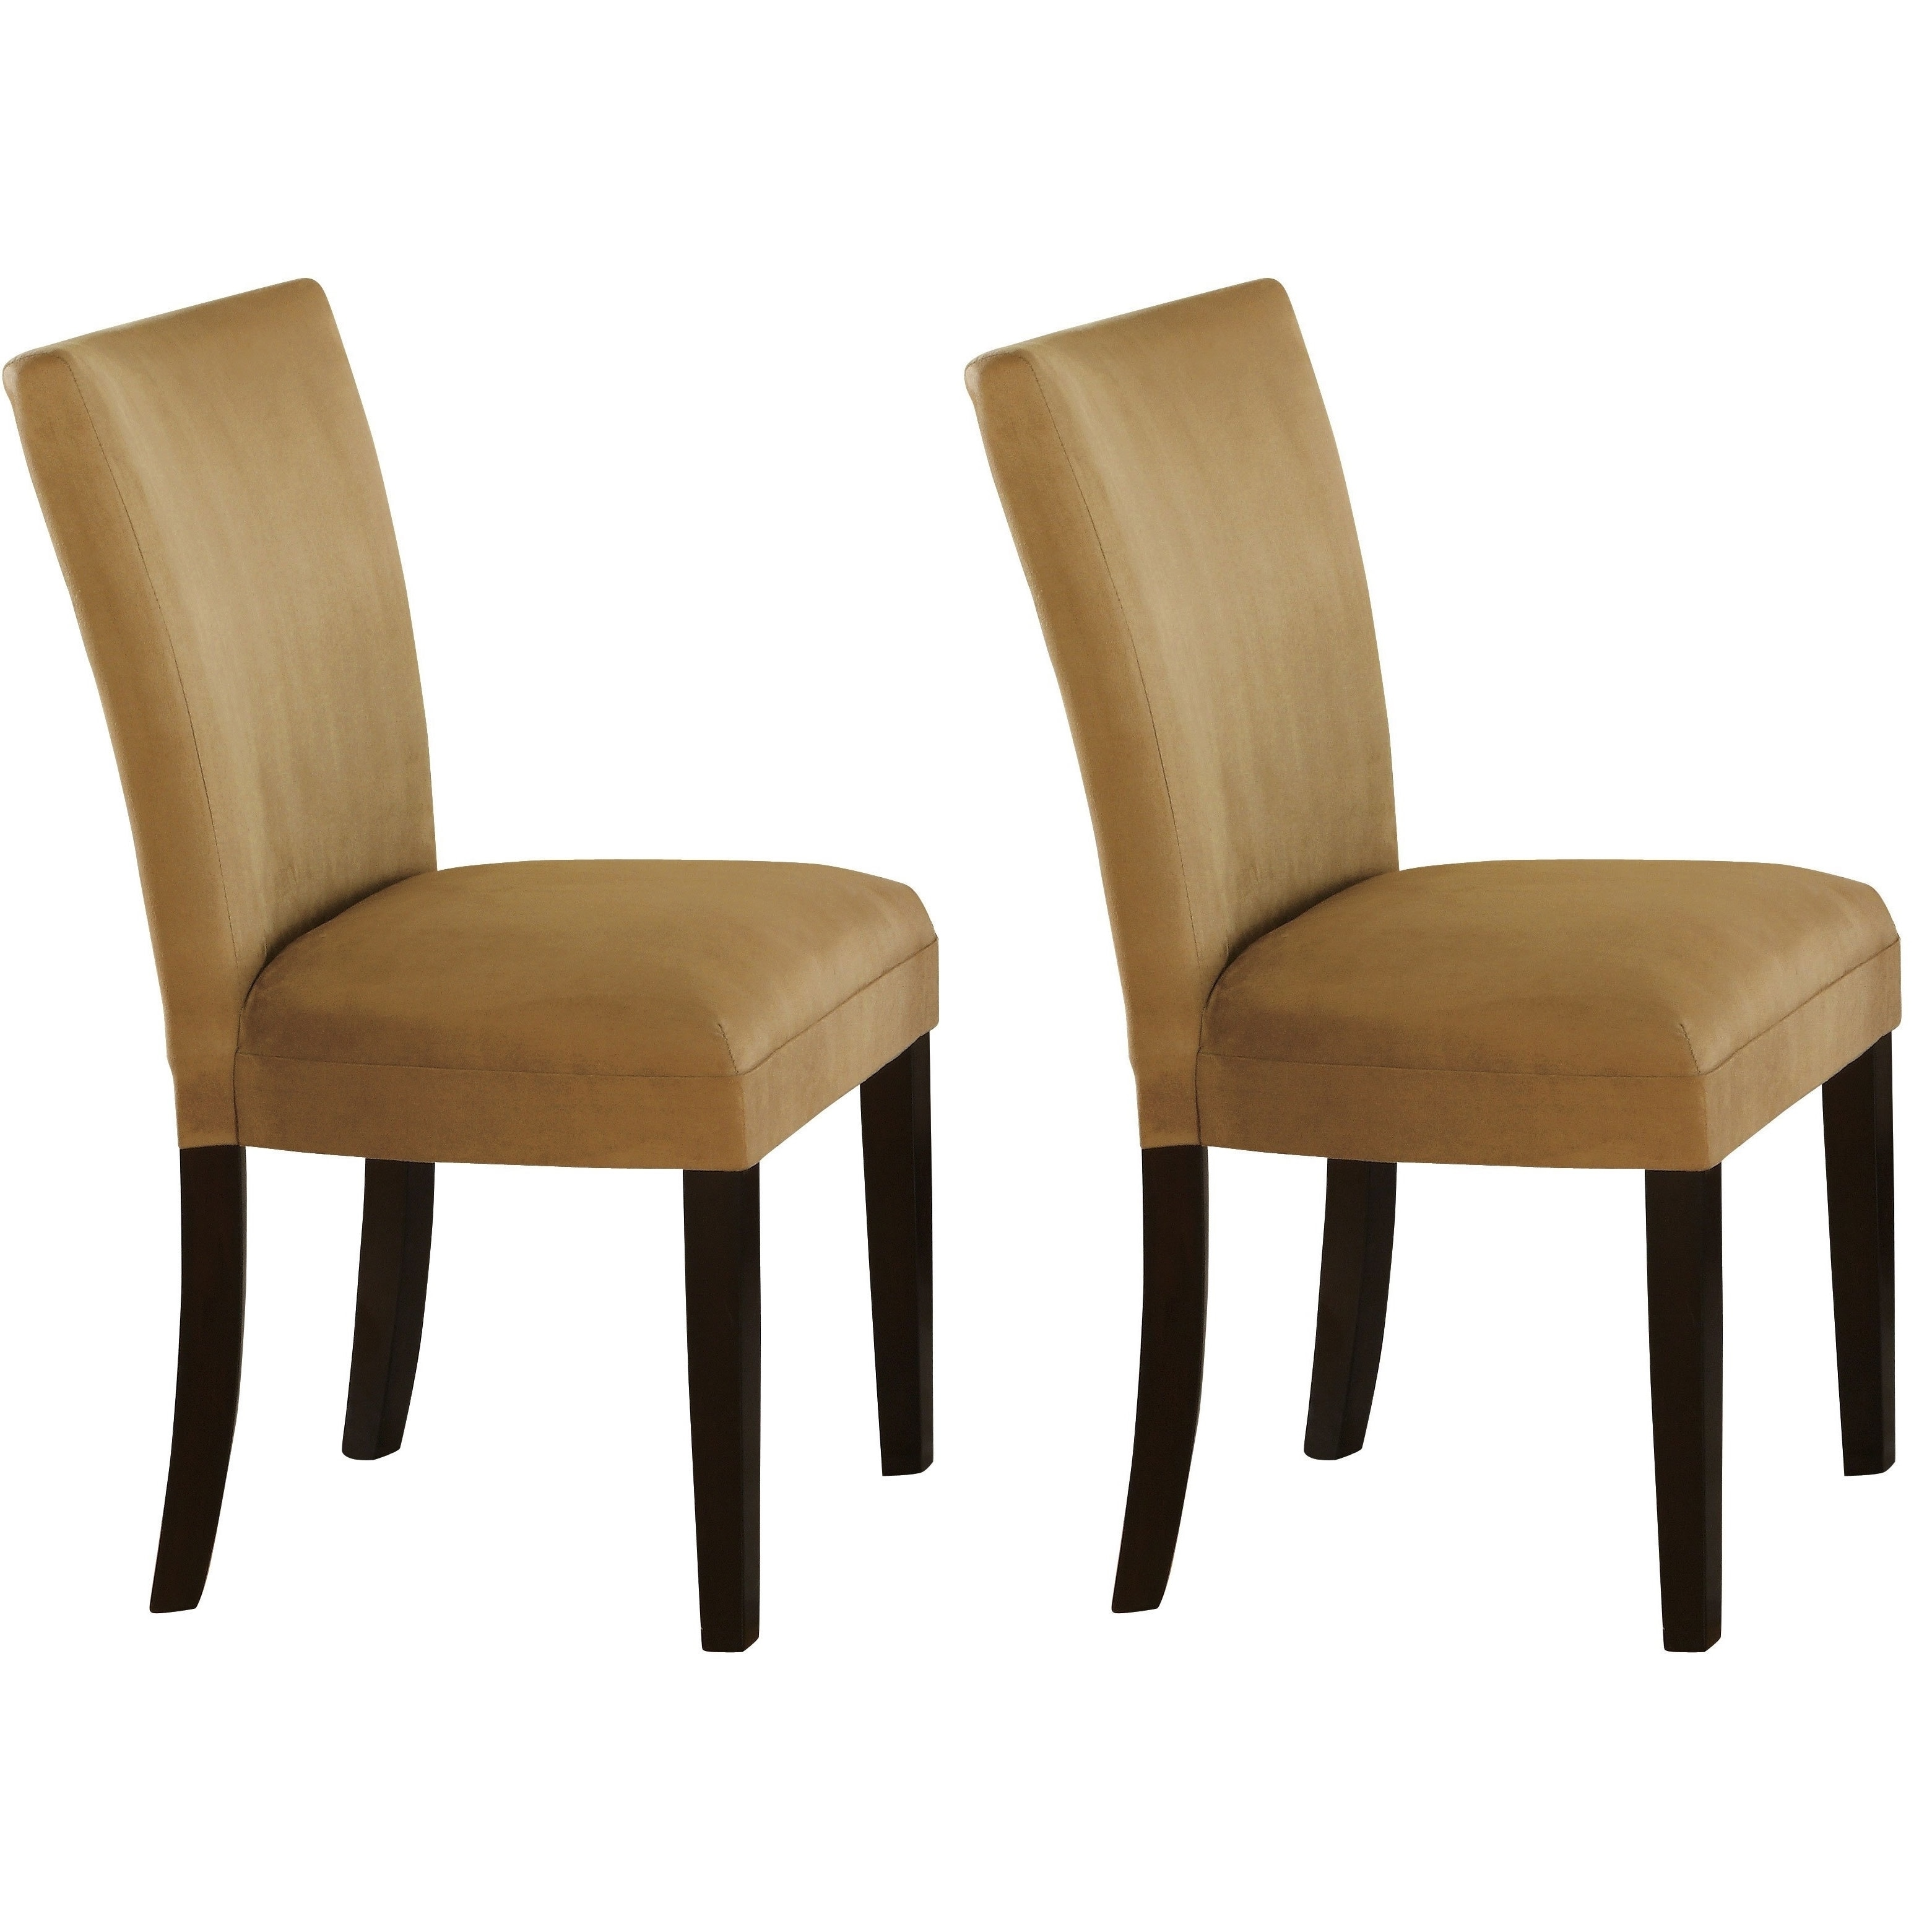 Mirage Round Glass Top Table / Microfiber Parson Chairs 5...